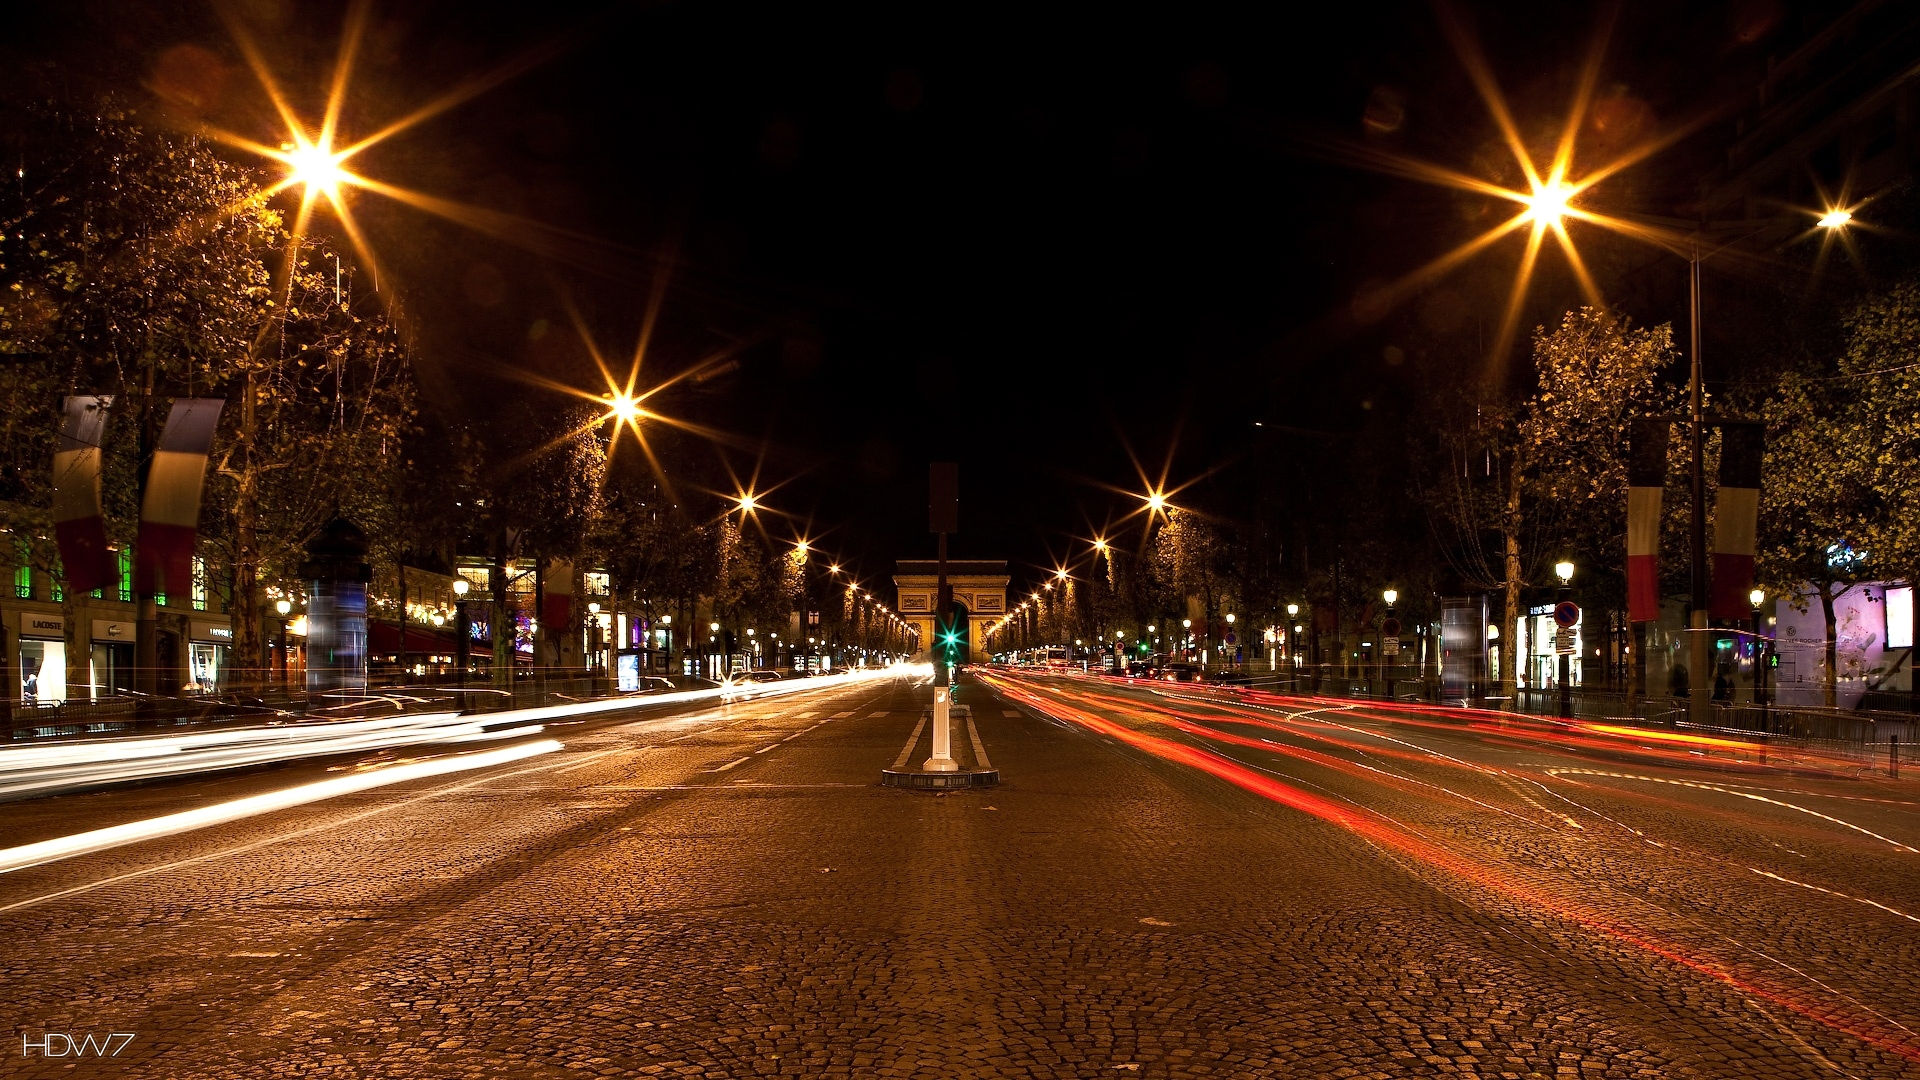 Abstract City Night Road In Paris Hd Street Gate Lights